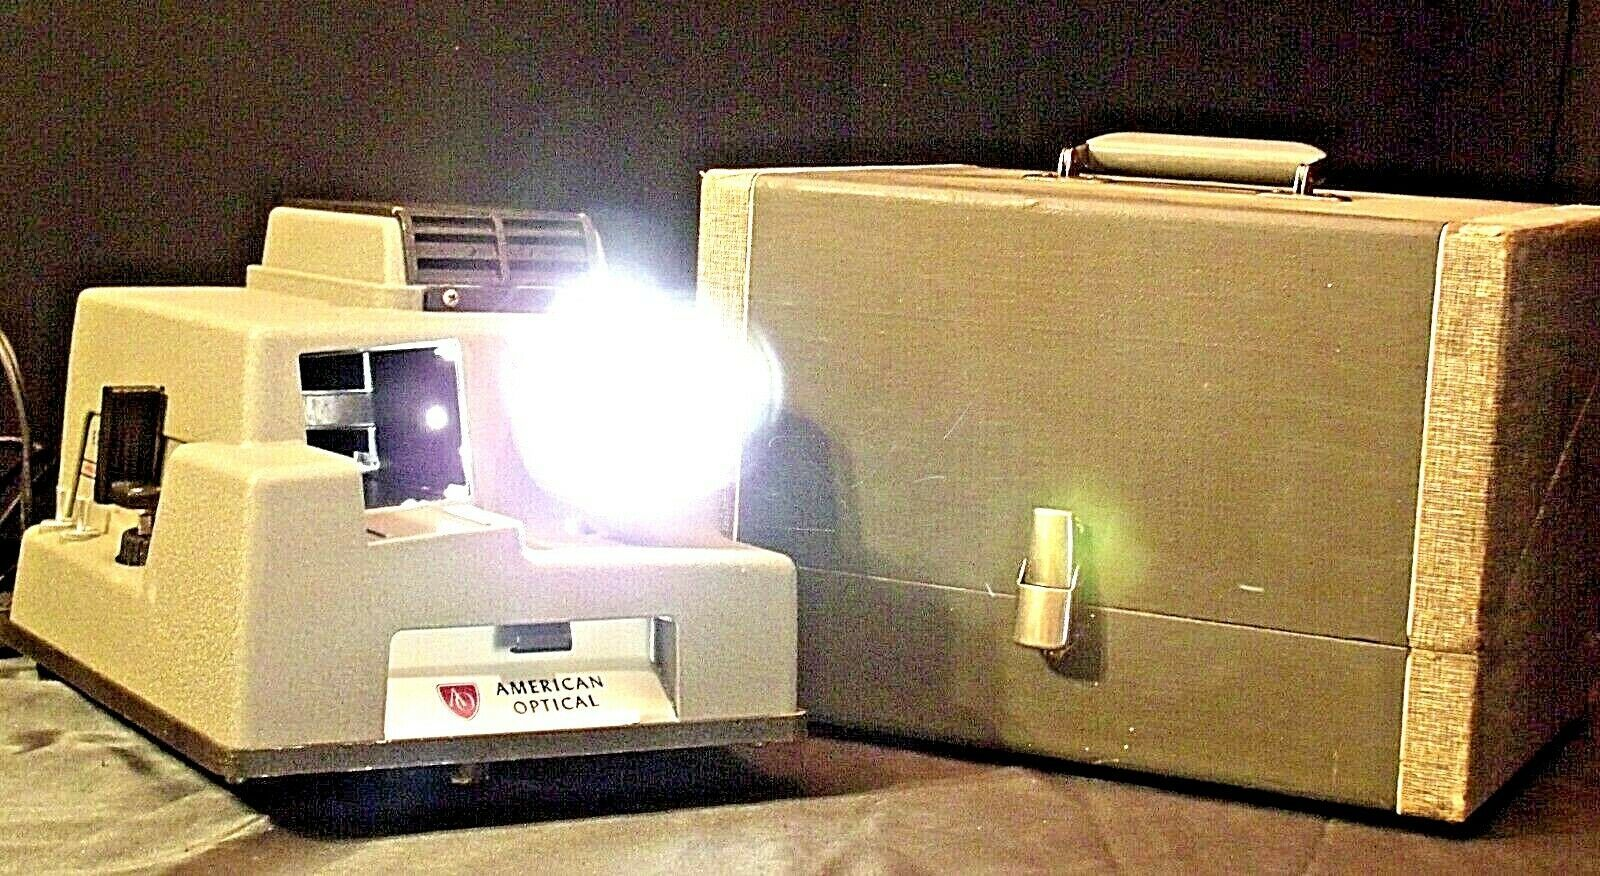 American Optical Executive 300 Slide Projector with Case AA20-2130 Antique (USA)